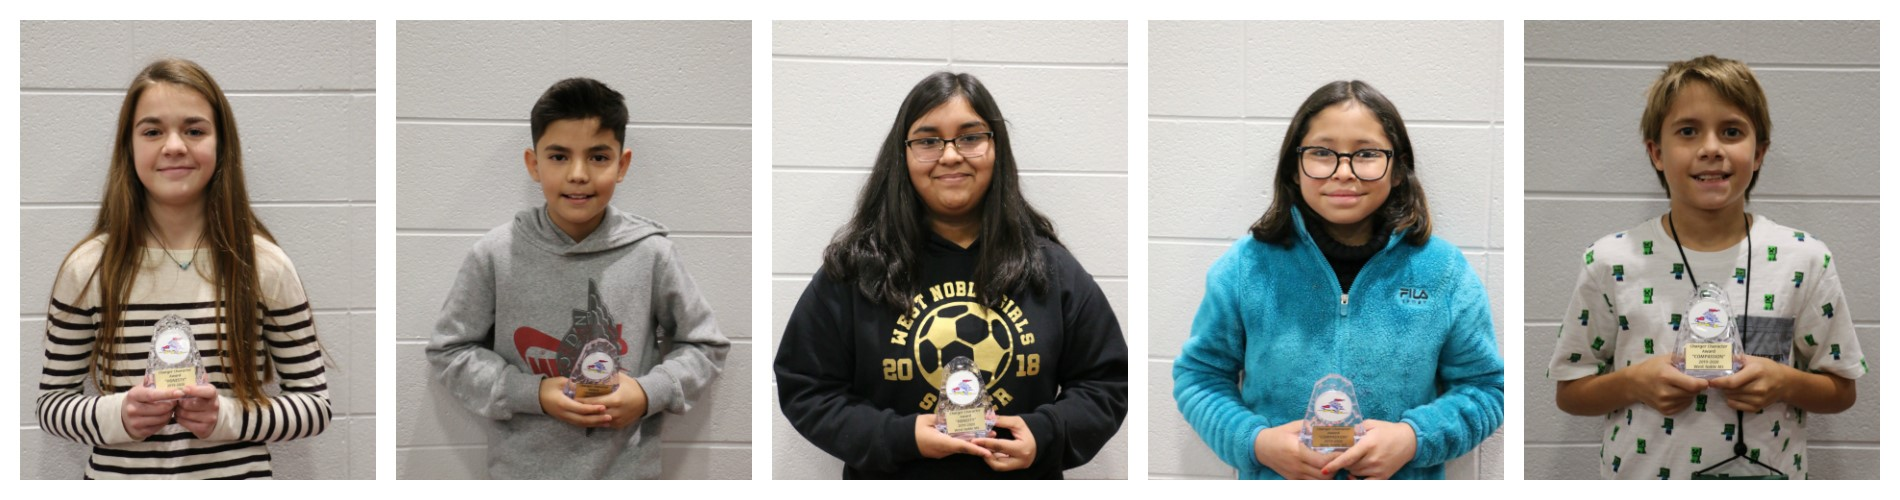 WNMS Charger Character Awards - Tri 1